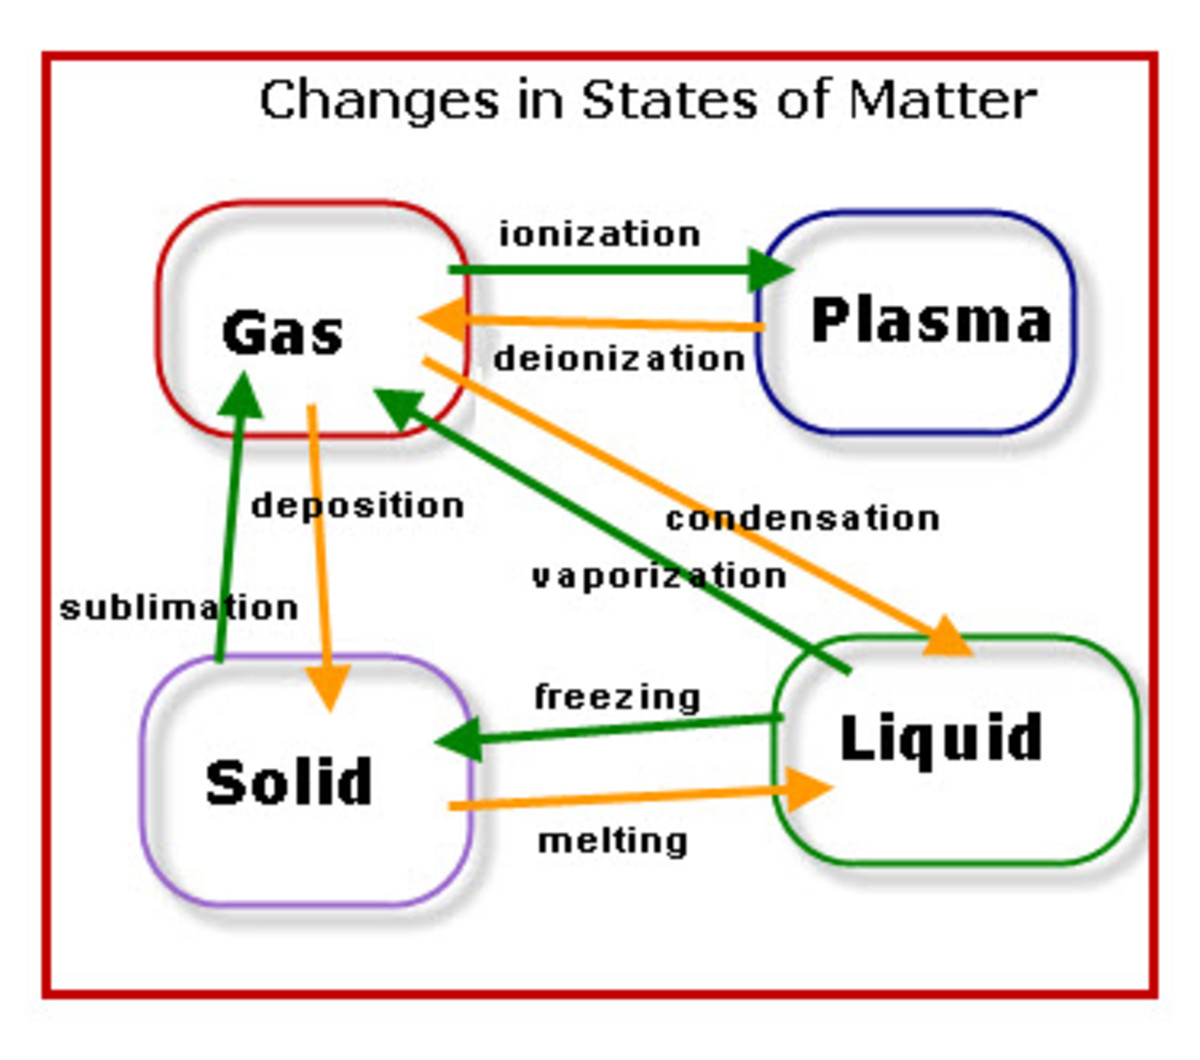 Changes to the states of matter